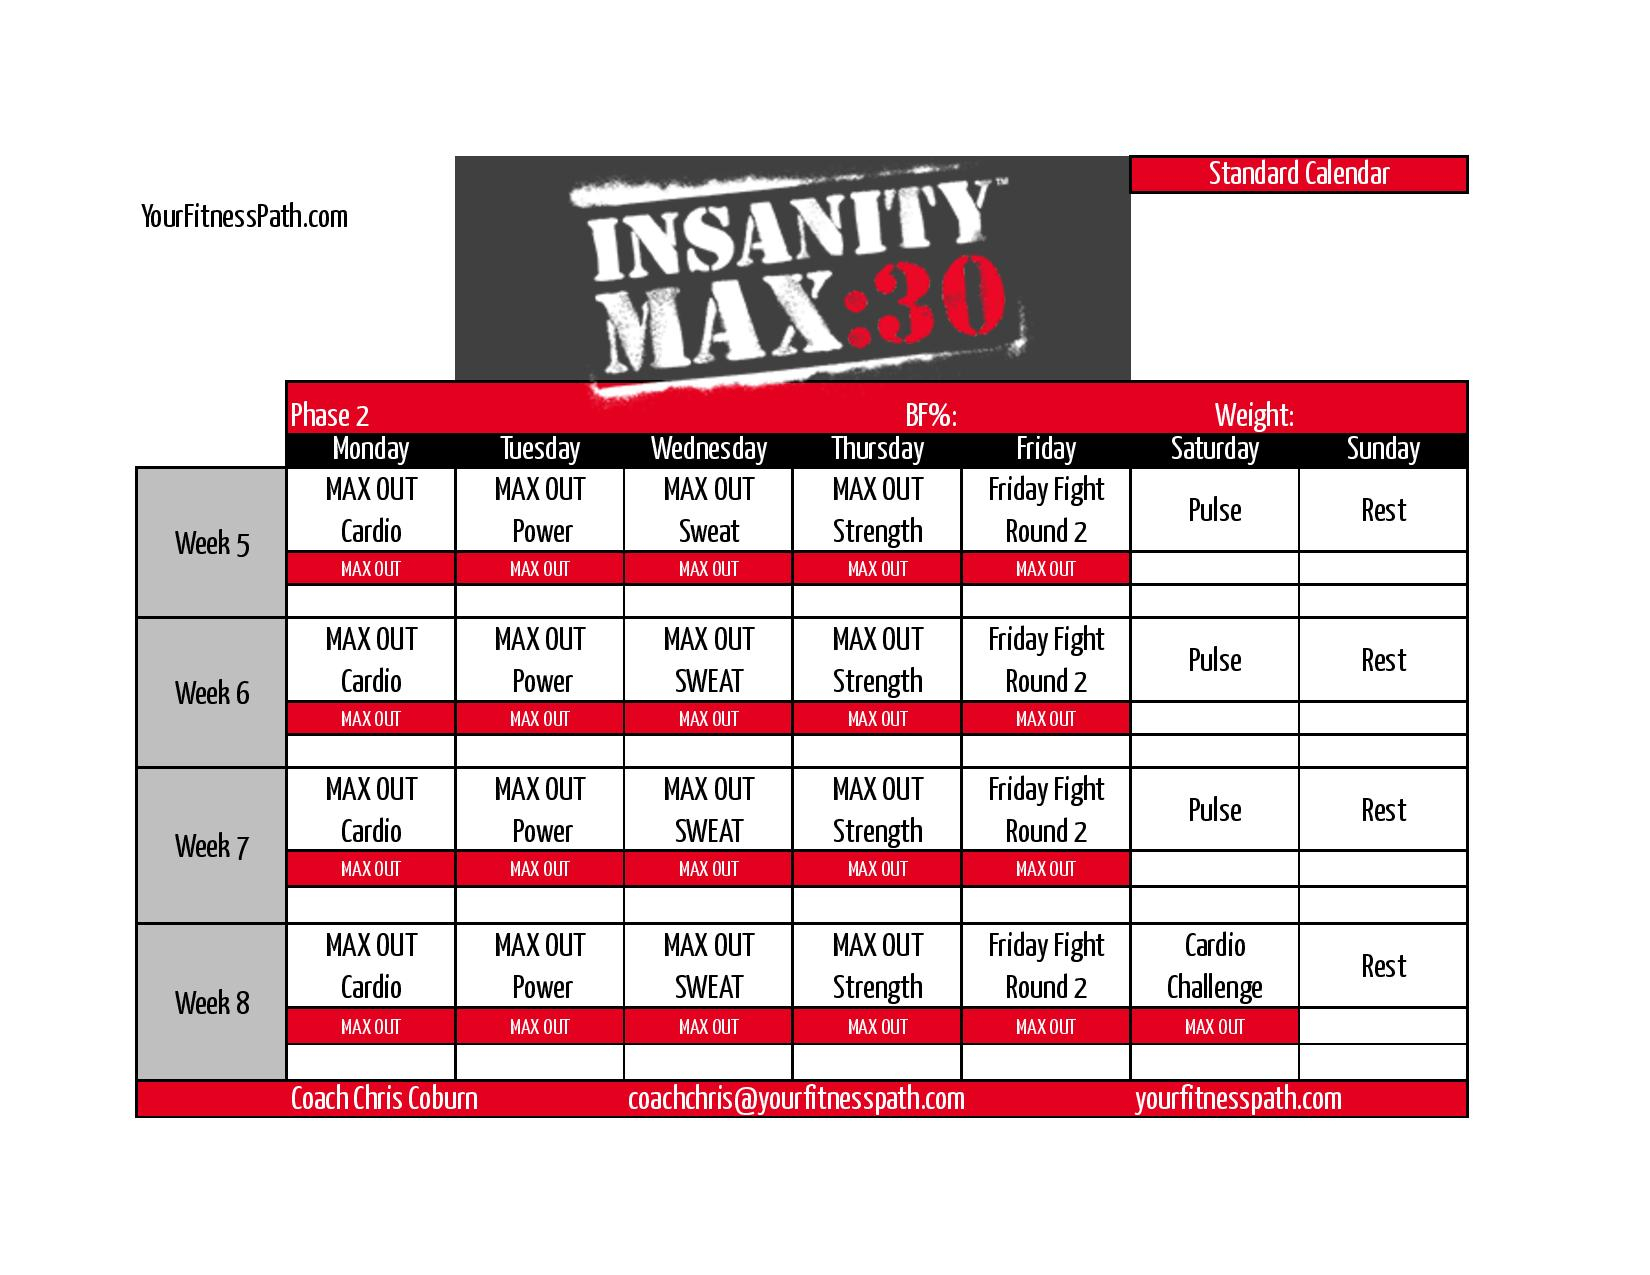 ✅Insanity Max 30 Calendar  You Calendars throughout Max 30 Calendar